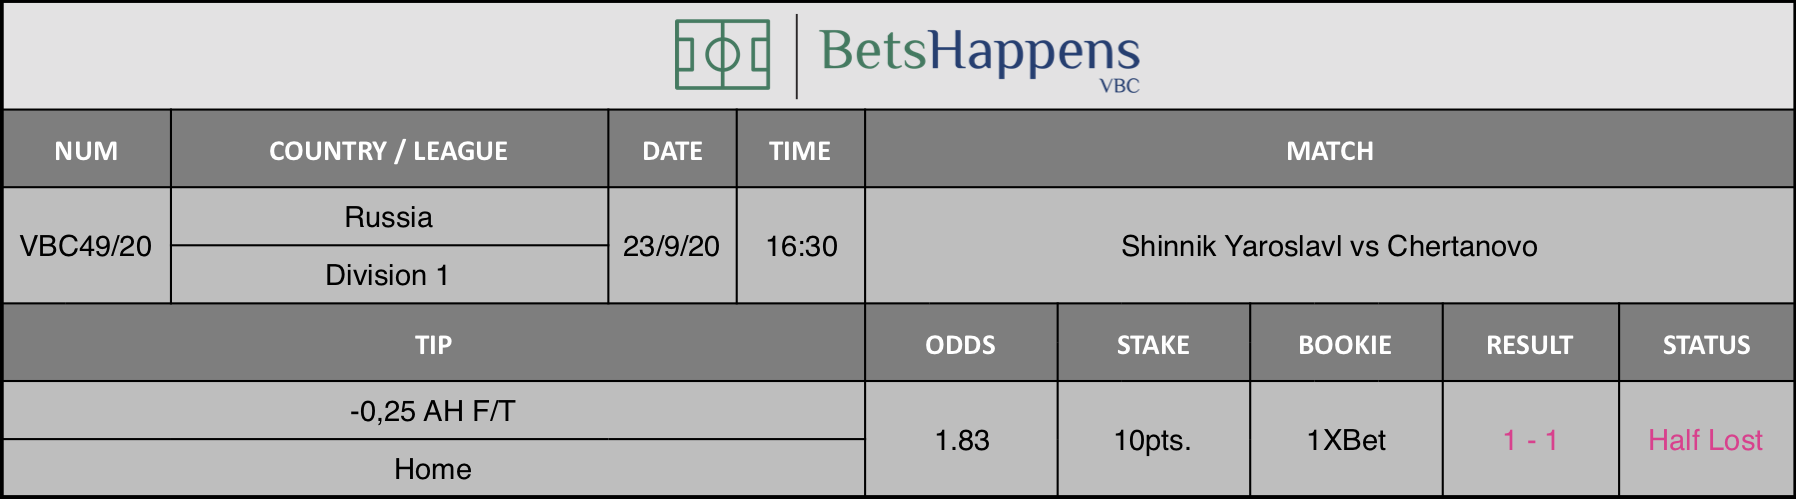 Results of our advice for the Shinnik Yaroslavl vs Chertanovo match in which -0.25 AH F / T Home is recommended.